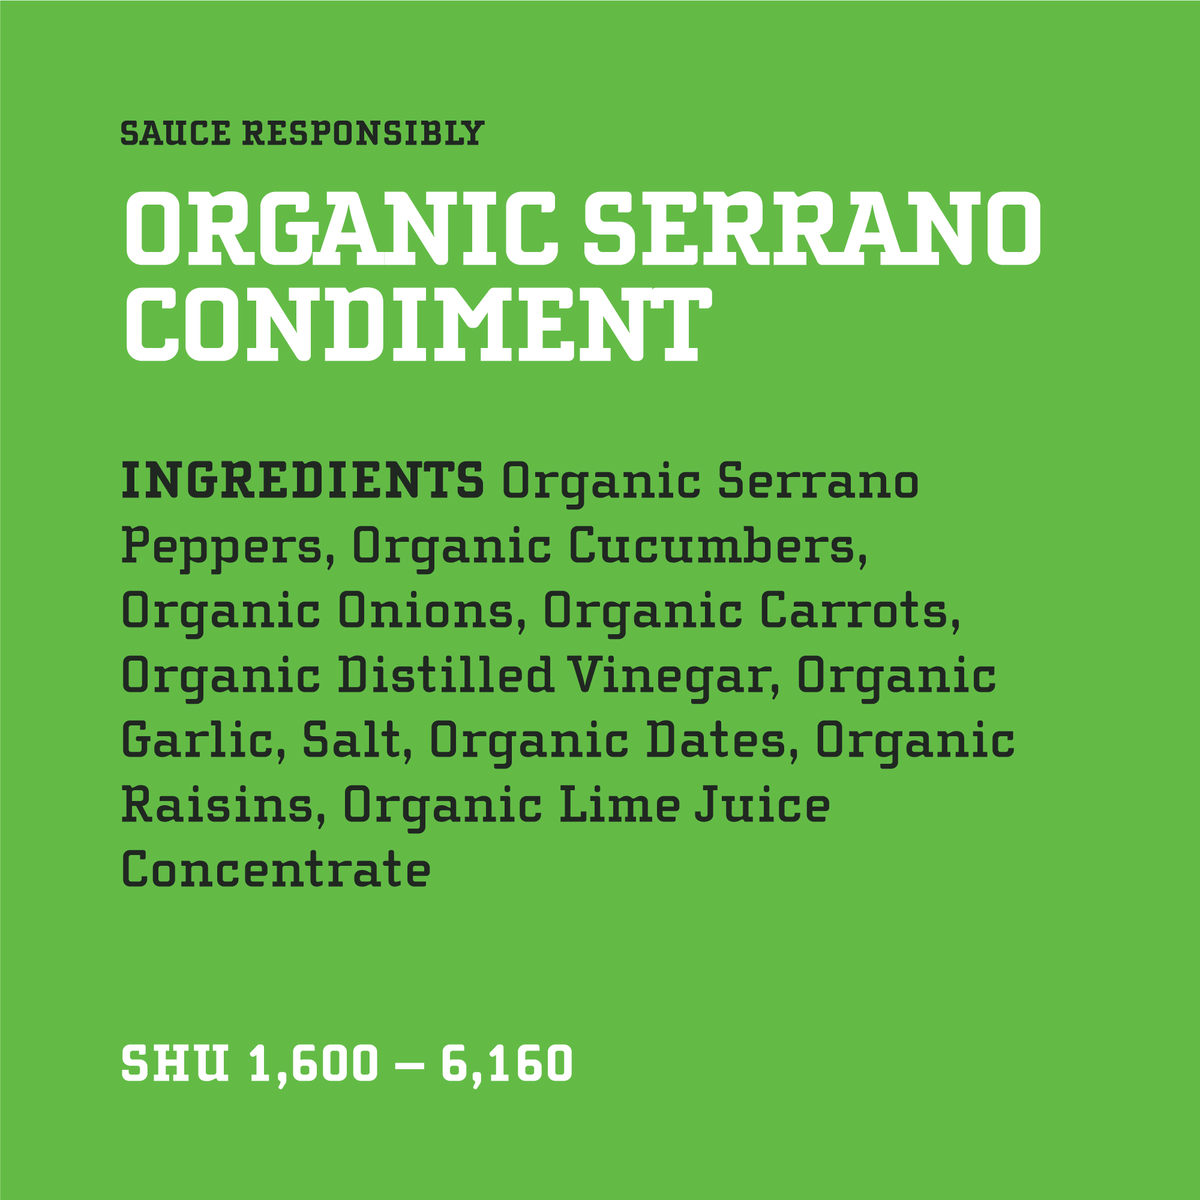 Yellowbird Organic Serrano Hot Sauce Ingredients